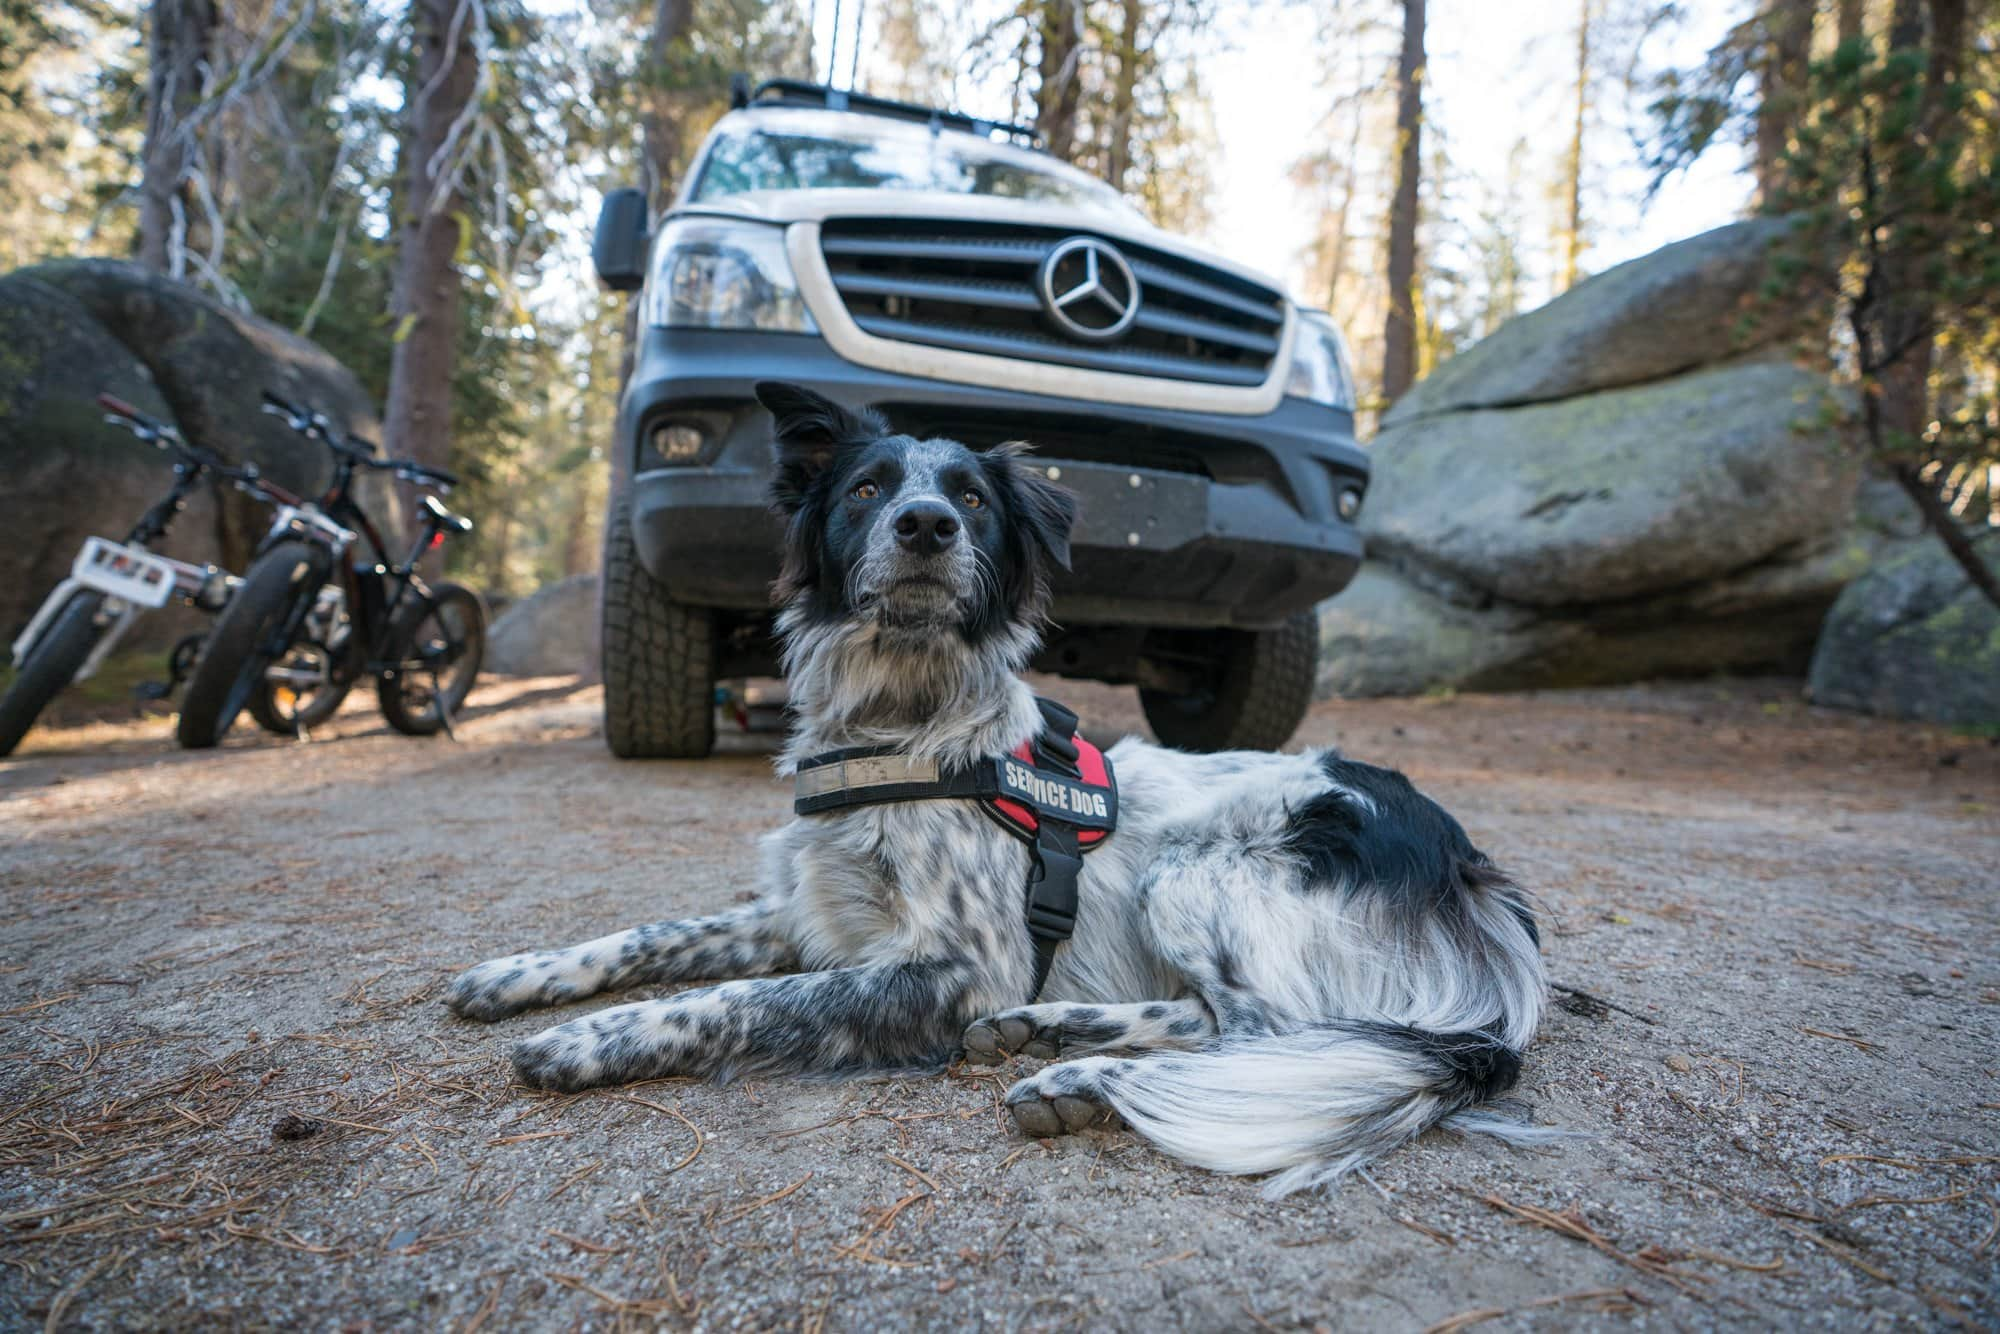 Yosemite National Park // Road tripping with your dog? Here are the most dog-friendly National Parks, along with info on trails and campgrounds where pets are permitted.